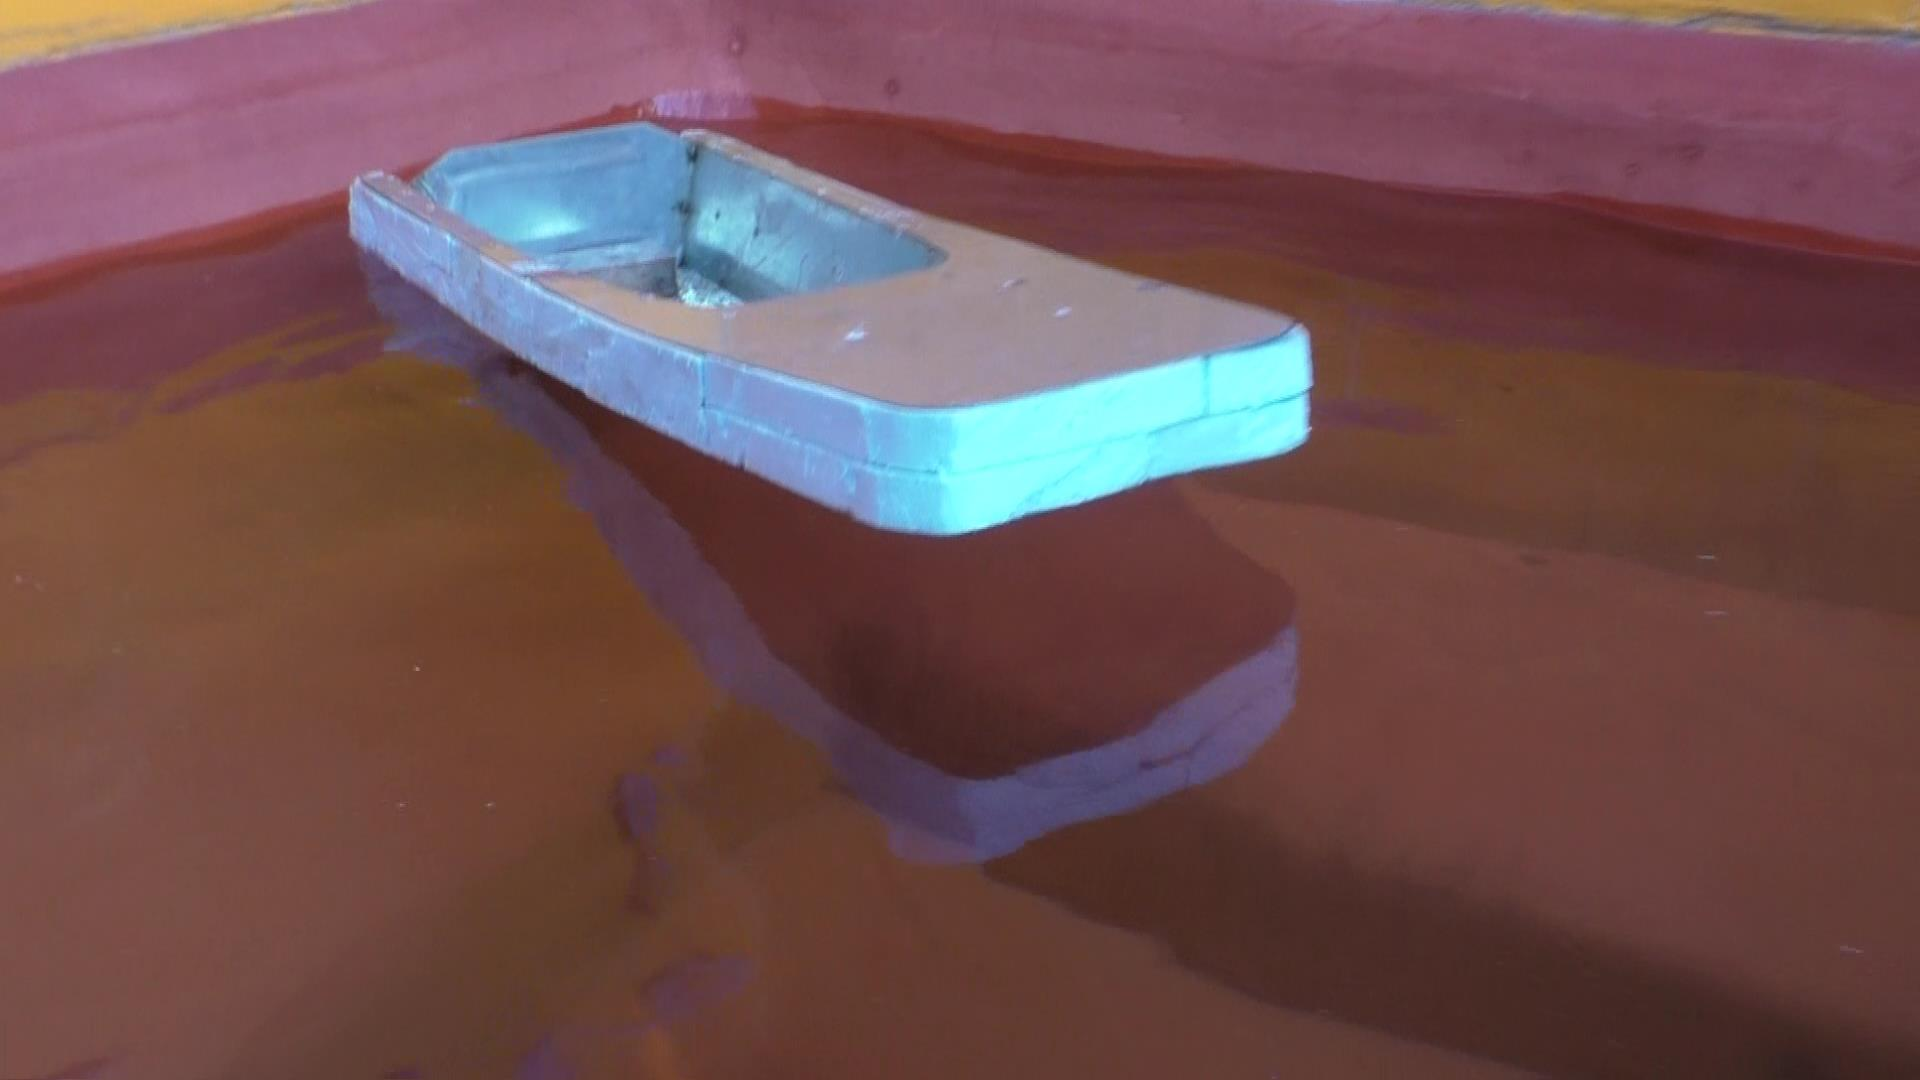 Diesel jet boat build part 1 modeling sv seeker ive been looking forward to starting this project for some time now josh and alexis wanted to help and they are returning in the spring so weve started sciox Choice Image